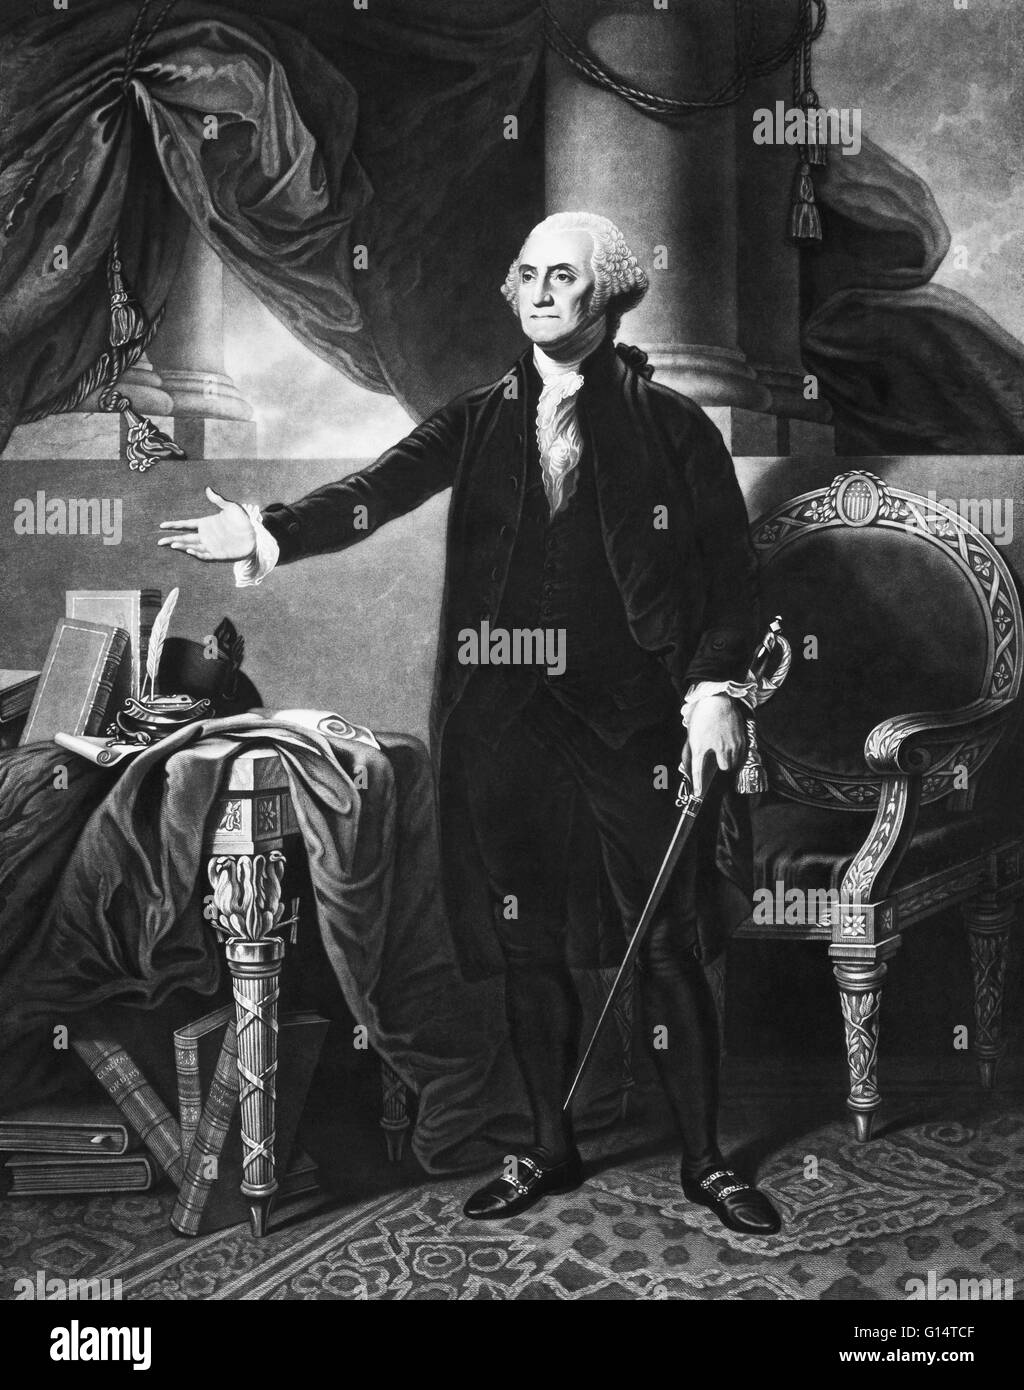 1844 Mezzotint portrait of George Washington, by H.S. Sadd, and based on Gilbert Stuart's Lansdowne Portrait, (1796). Stock Photo